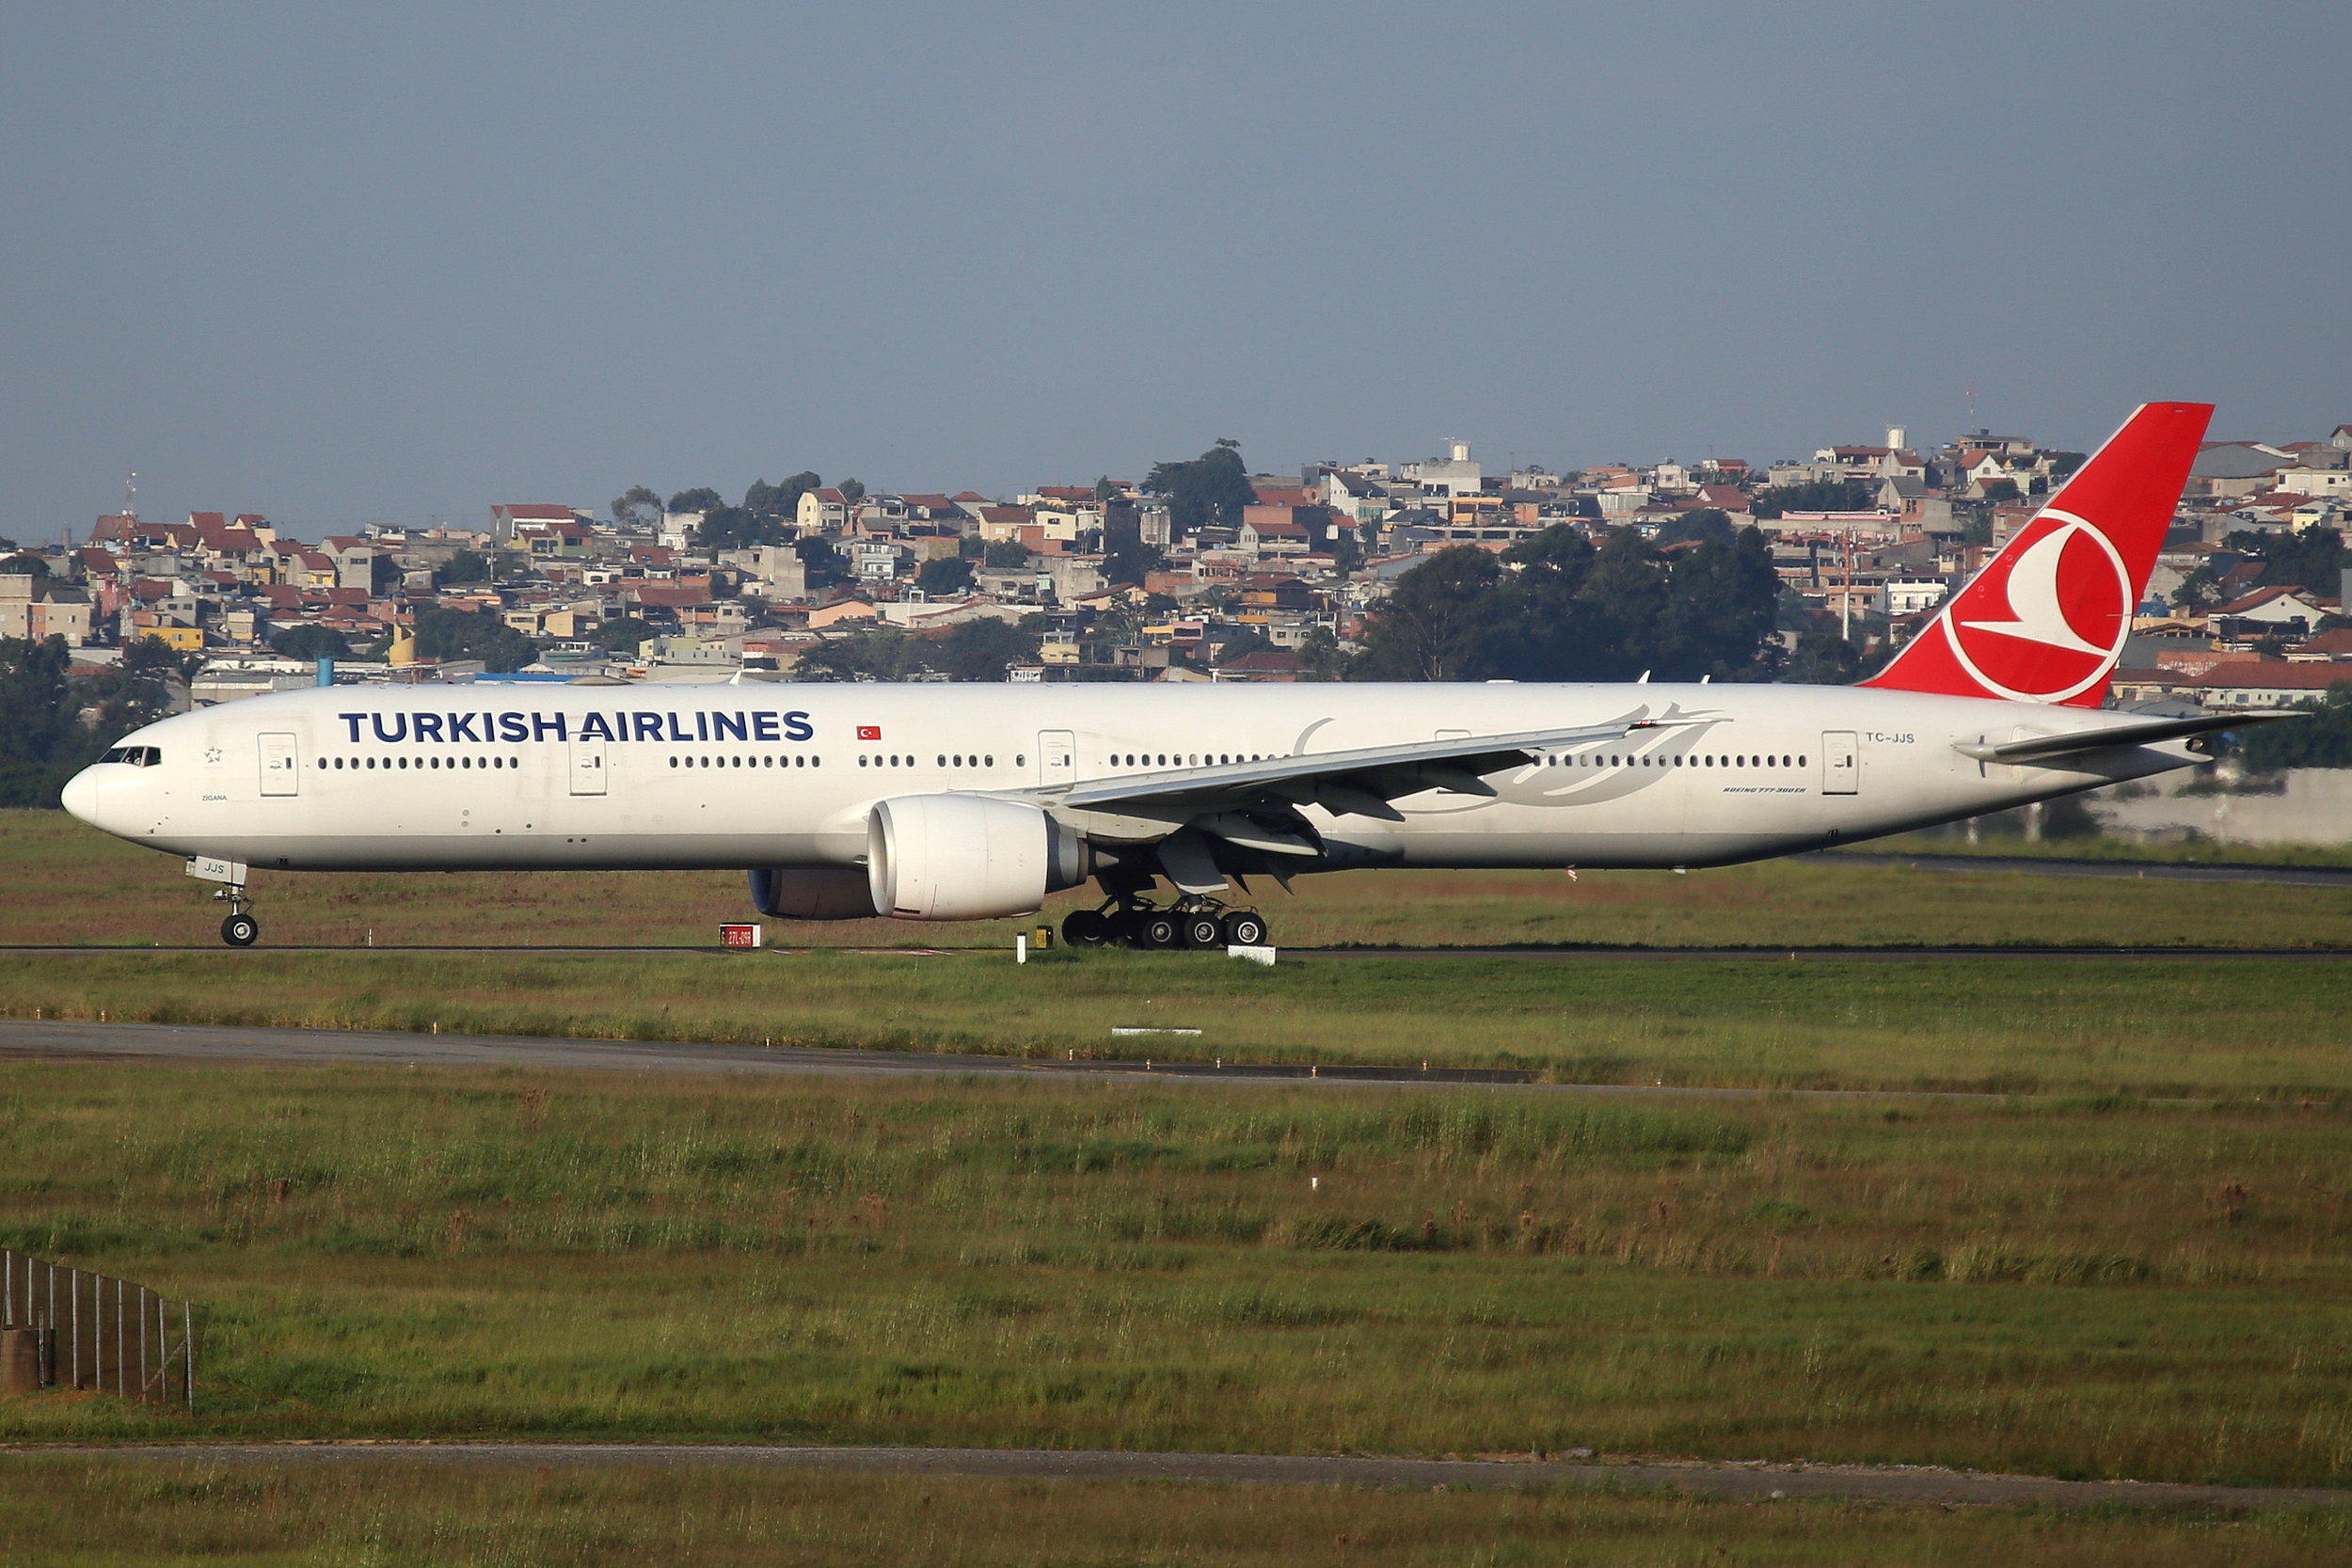 TC-JJS Turkish Airlines B777-3 taken from the roof of the Matiz Hotel at Sao Paulo Guarulhos Airport 27th April 2019 by John Wood